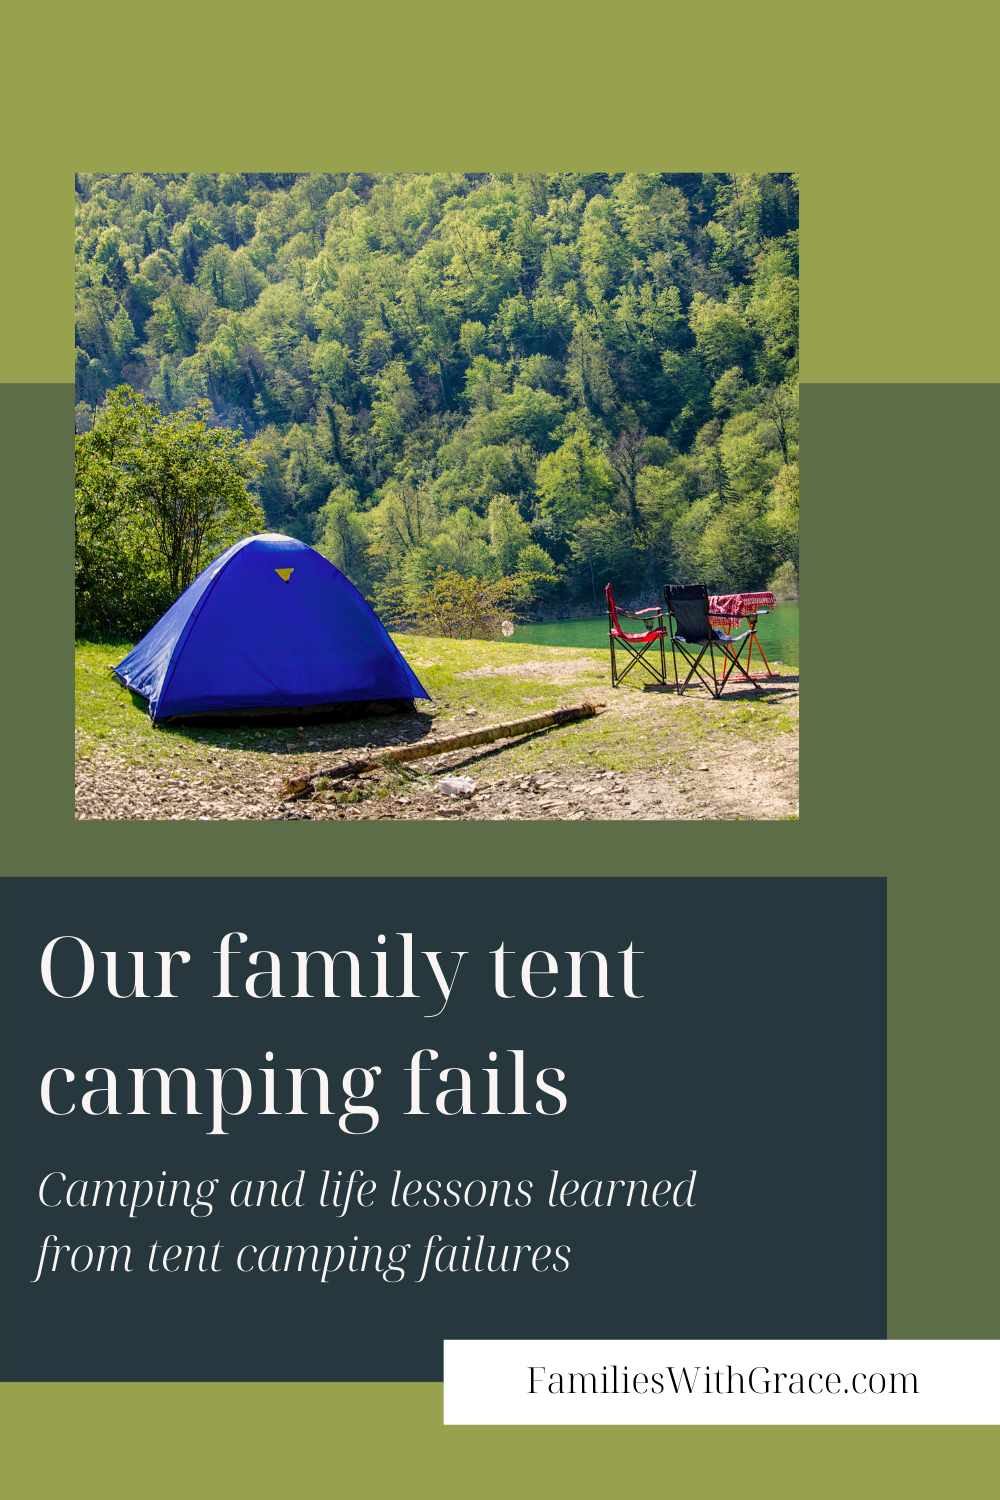 Our family tent camping fails